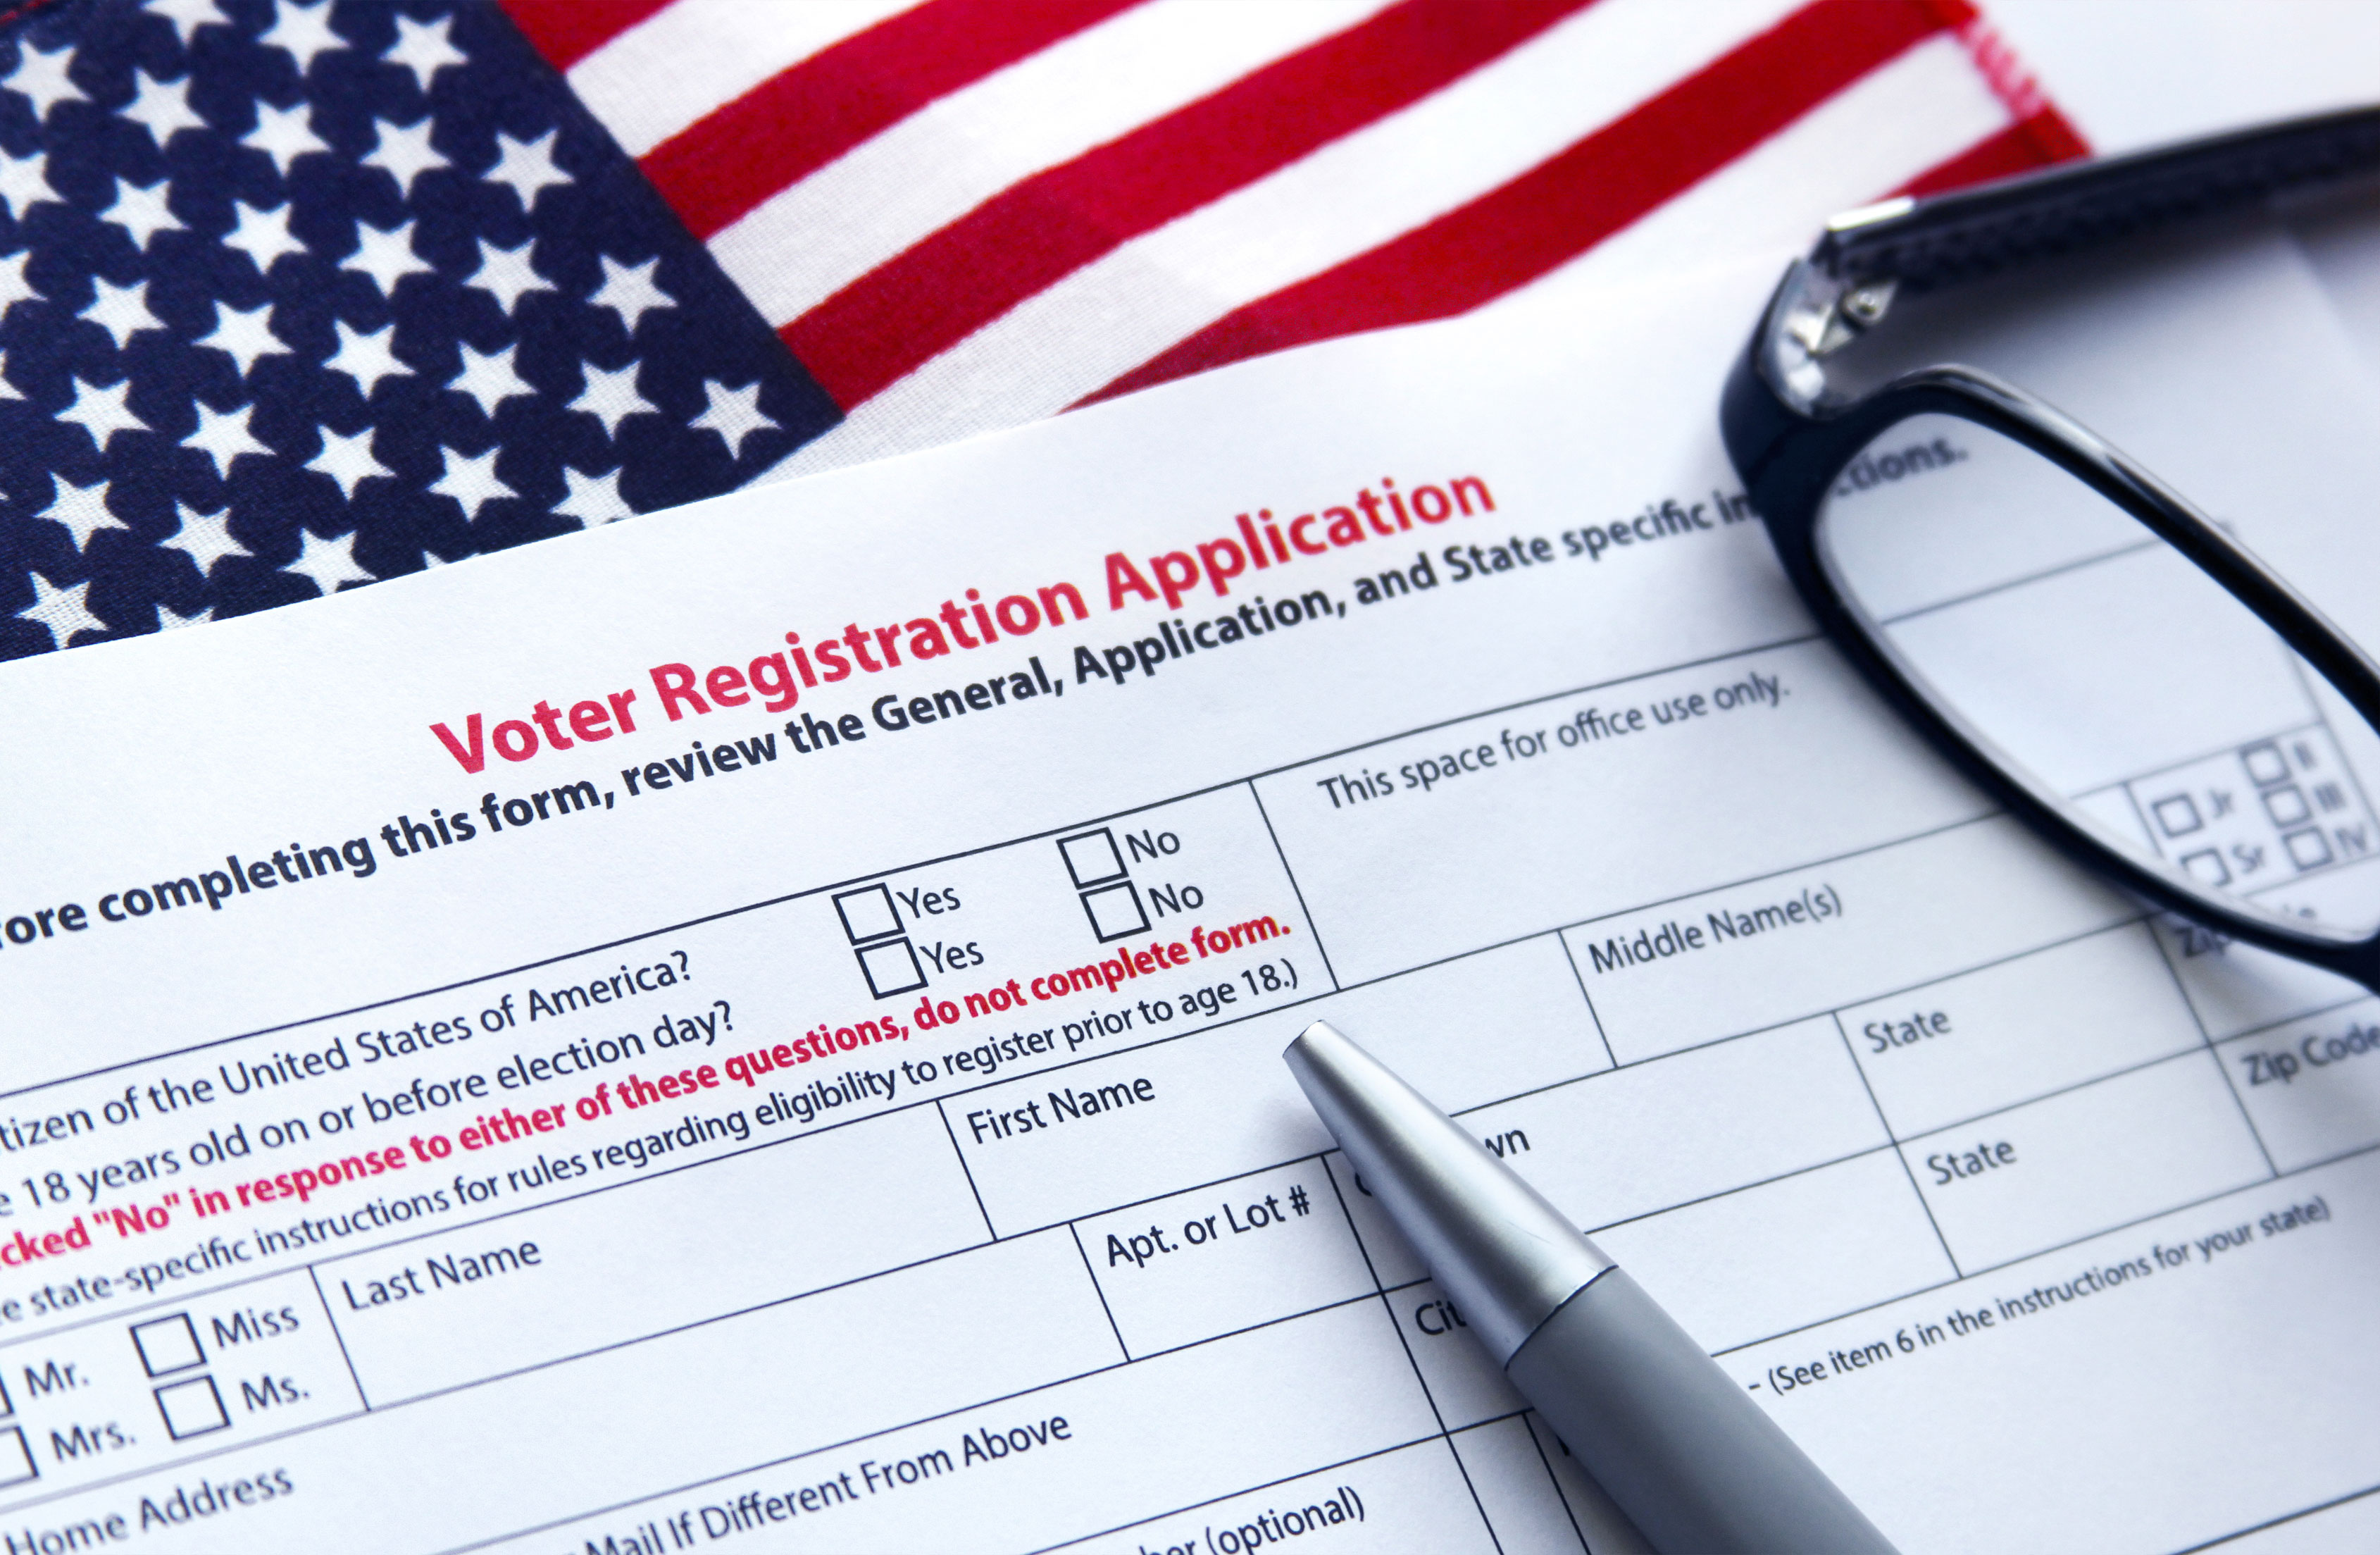 Register to Vote on Friday, July 19th at GAAR